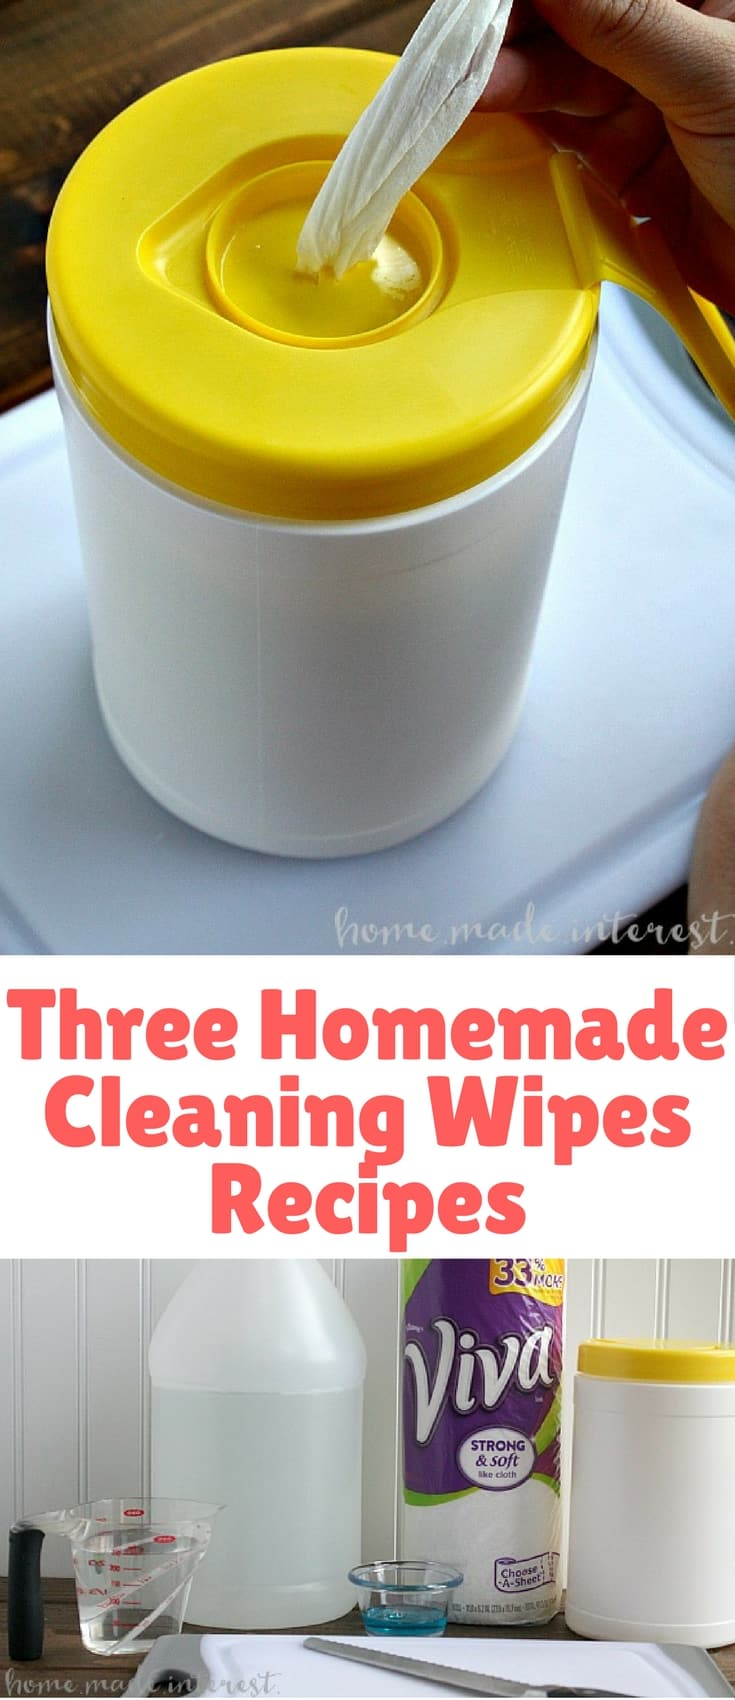 A simple tutorial with three recipes for making your own Homemade Cleaning Wipes.